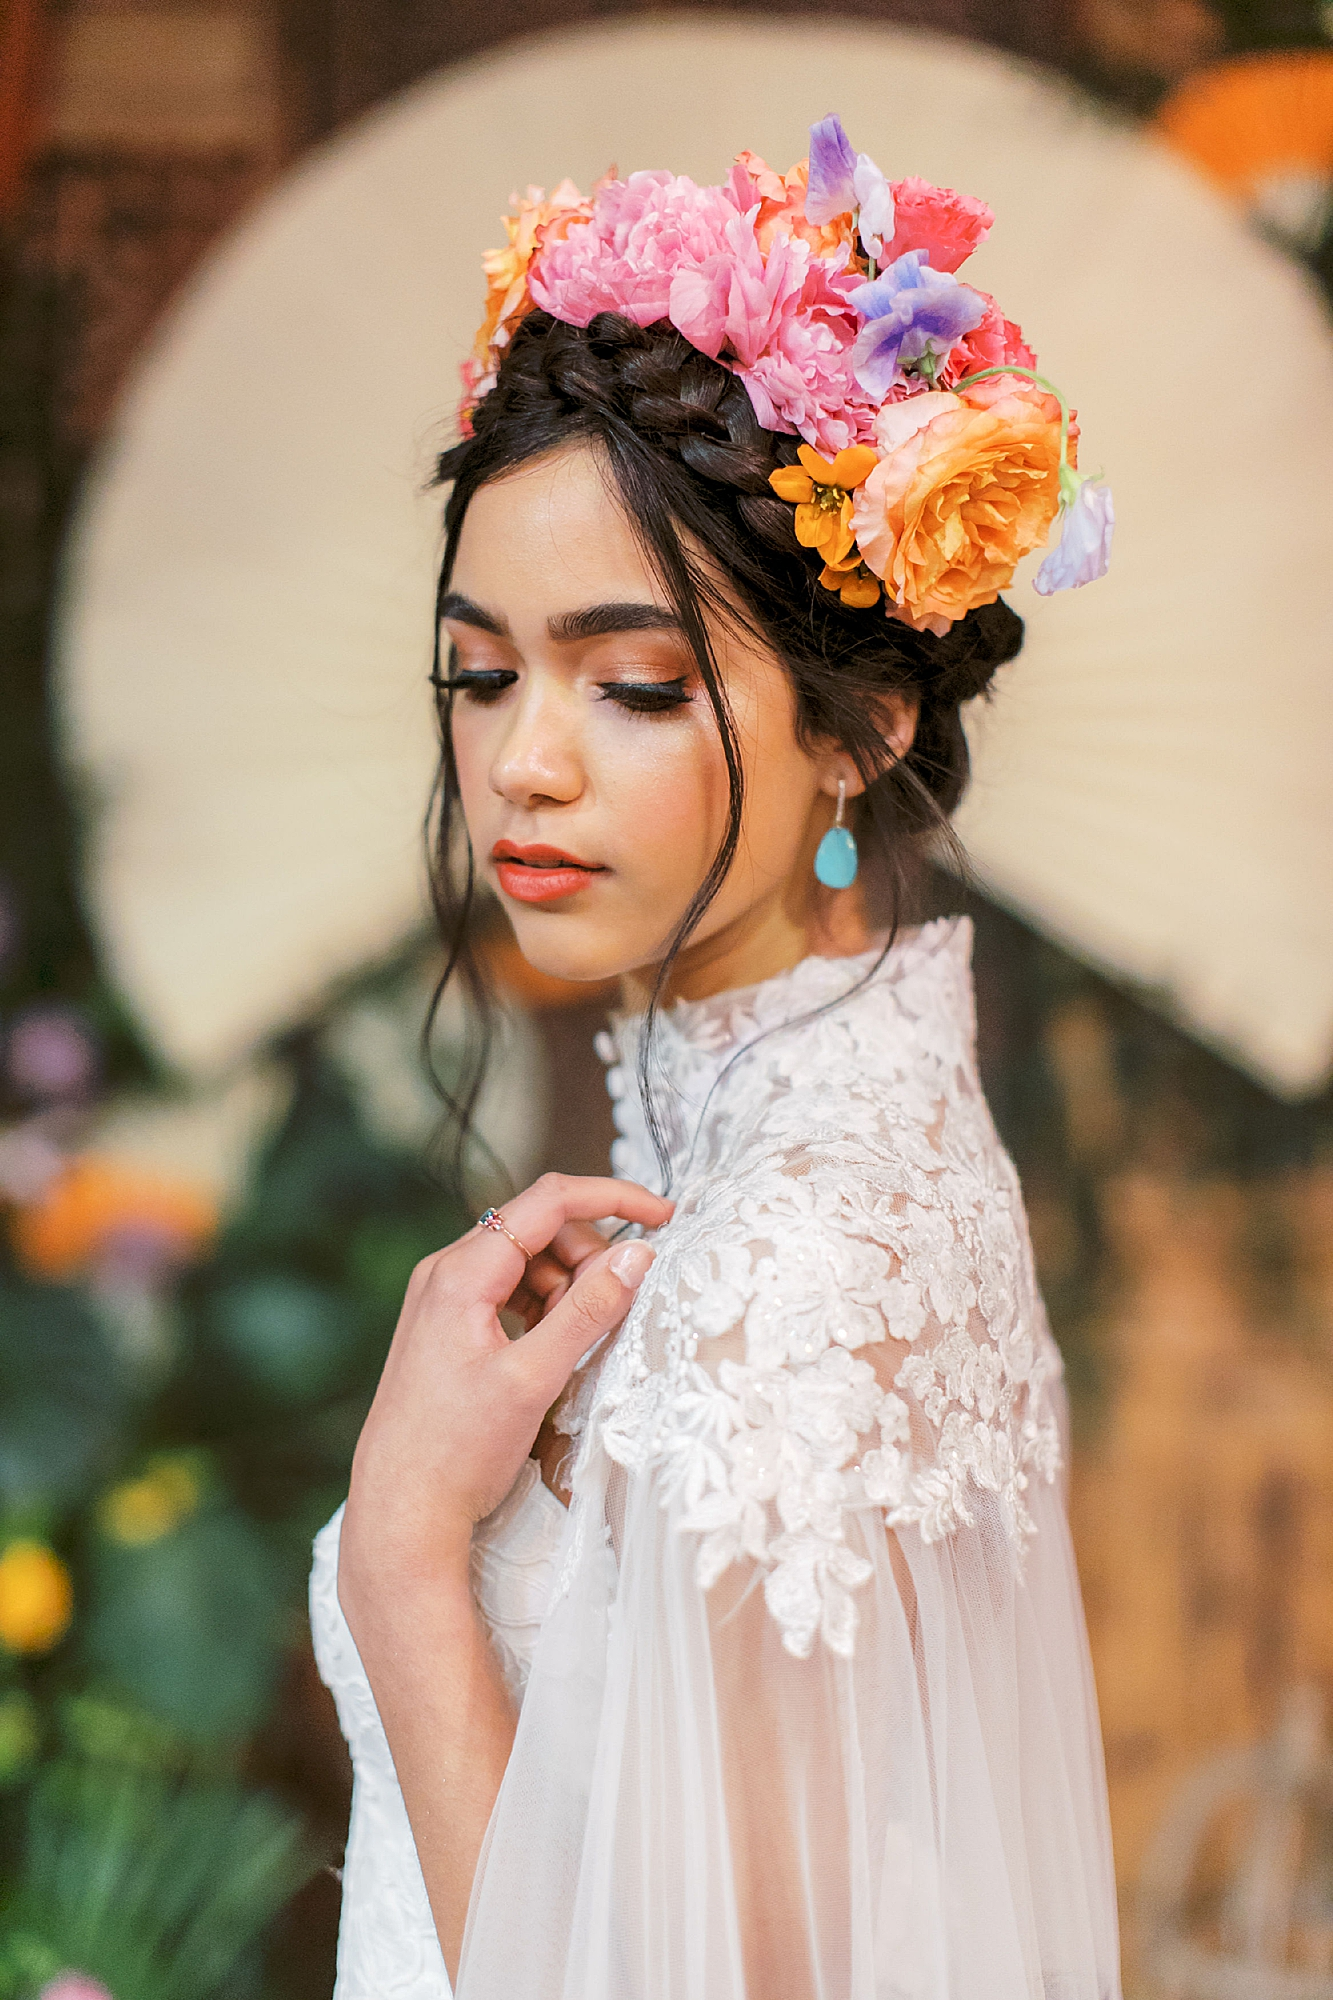 Vibrant and Colorful Frida Kahlo Inspired Wedding Photography by Magdalena Studios 0040